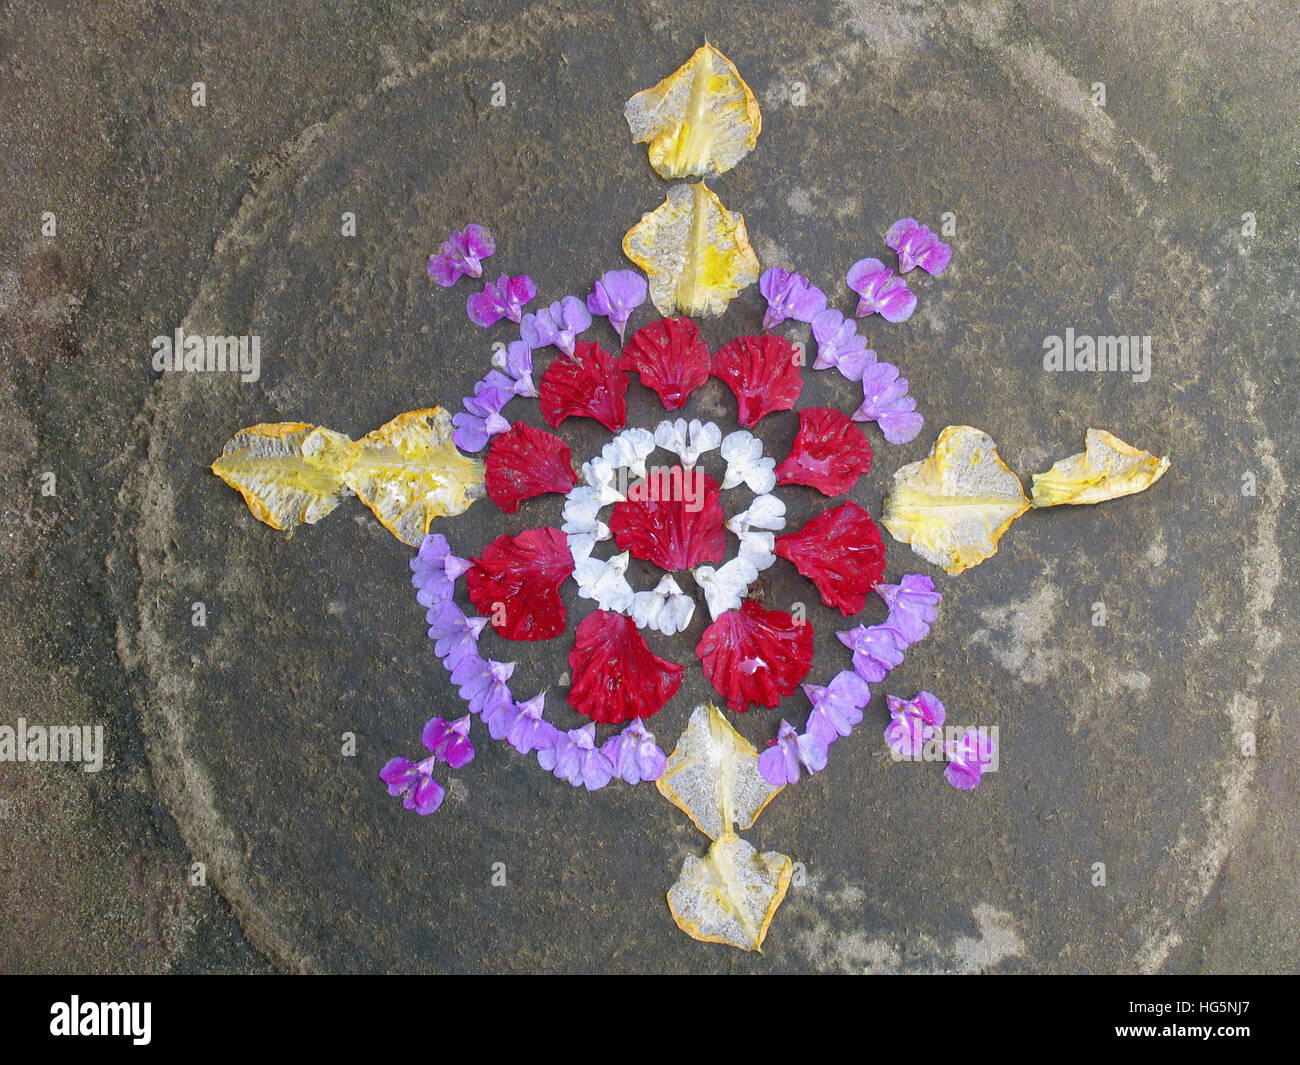 Flower Decoration During Onam Festival In Kerala Flowers Are Brought And Arranged Various Formations Known As Athappookalam It Is An Assortment